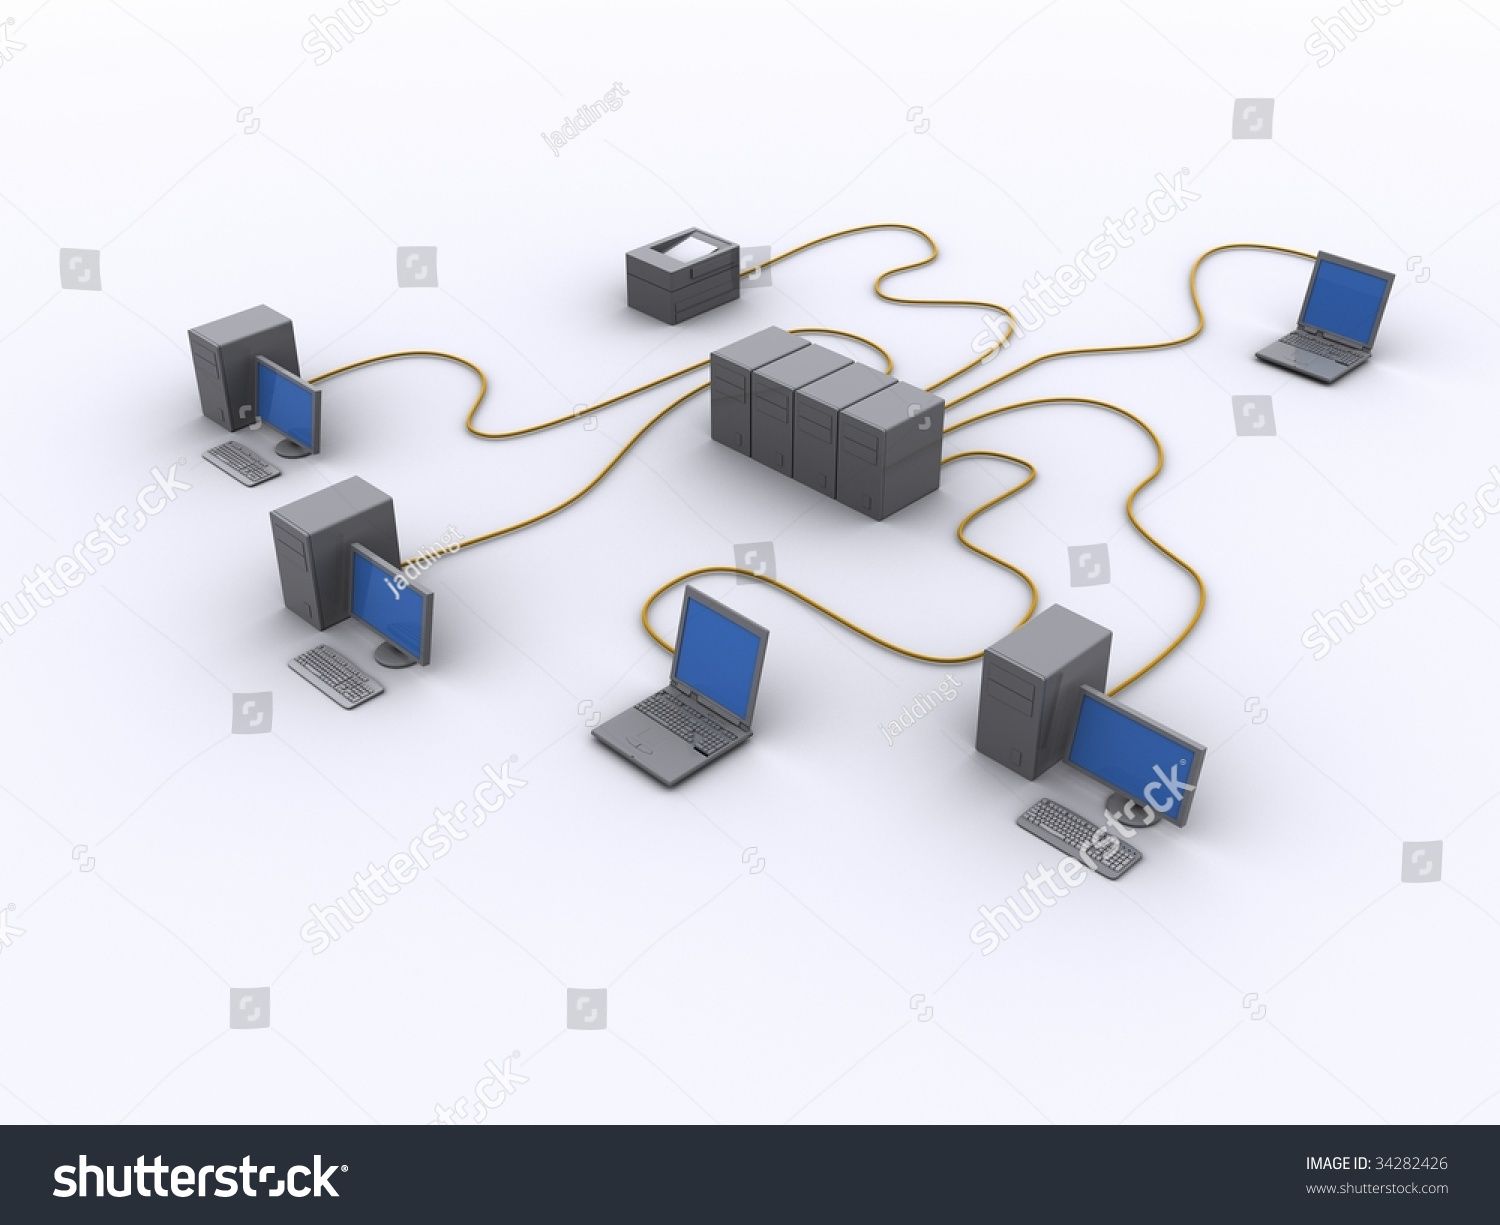 stock photo a picture of a wired network diagram 34282426 picture wired network diagram stock illustration 34282426 Wired and Wireless Network Diagram at panicattacktreatment.co